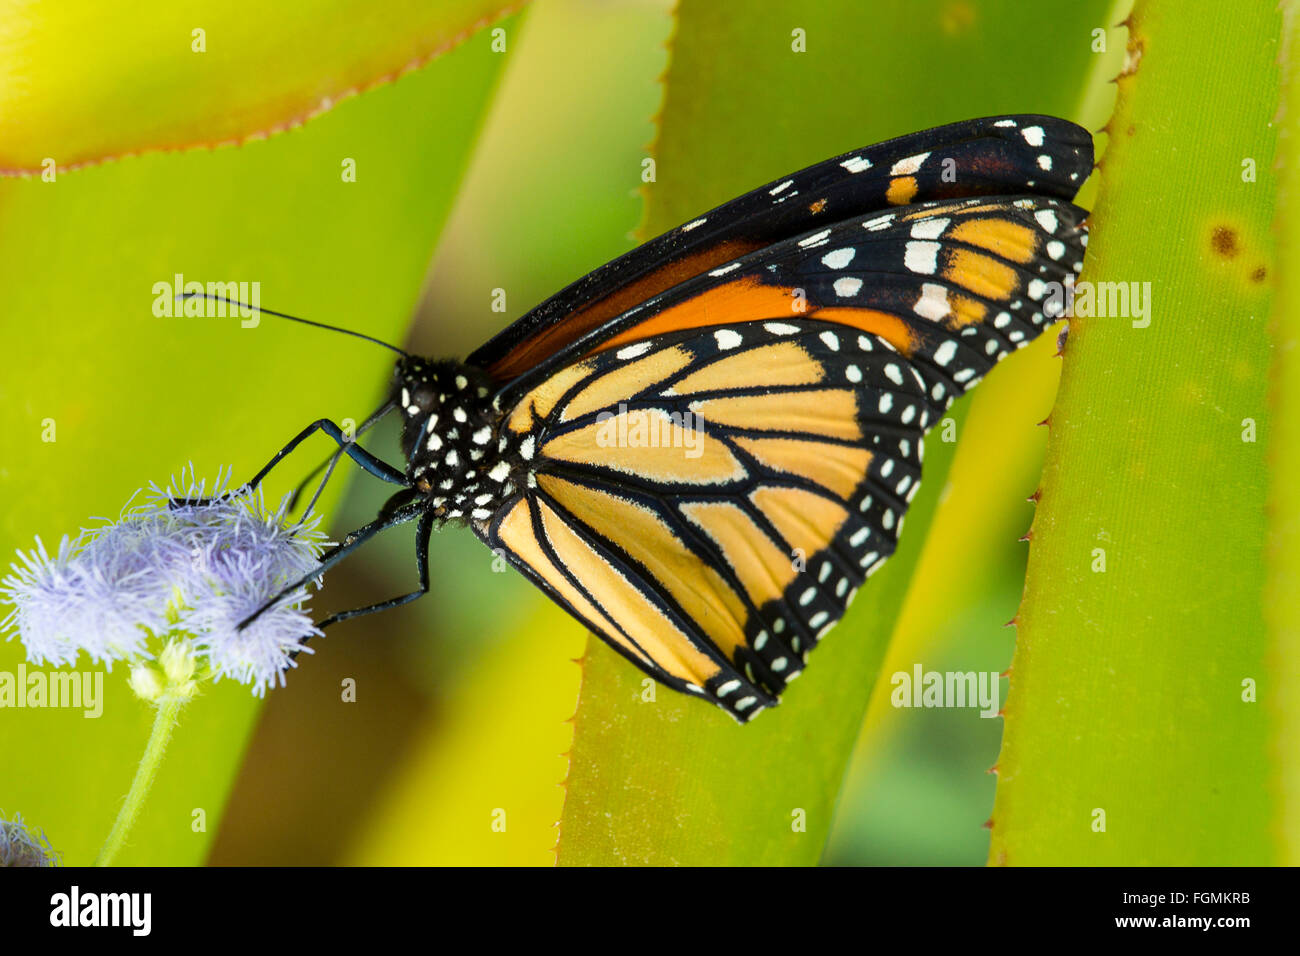 Monarch Butterfly Danaus plexippus at The Butterfly Estates in Fort Myers Florida - Stock Image